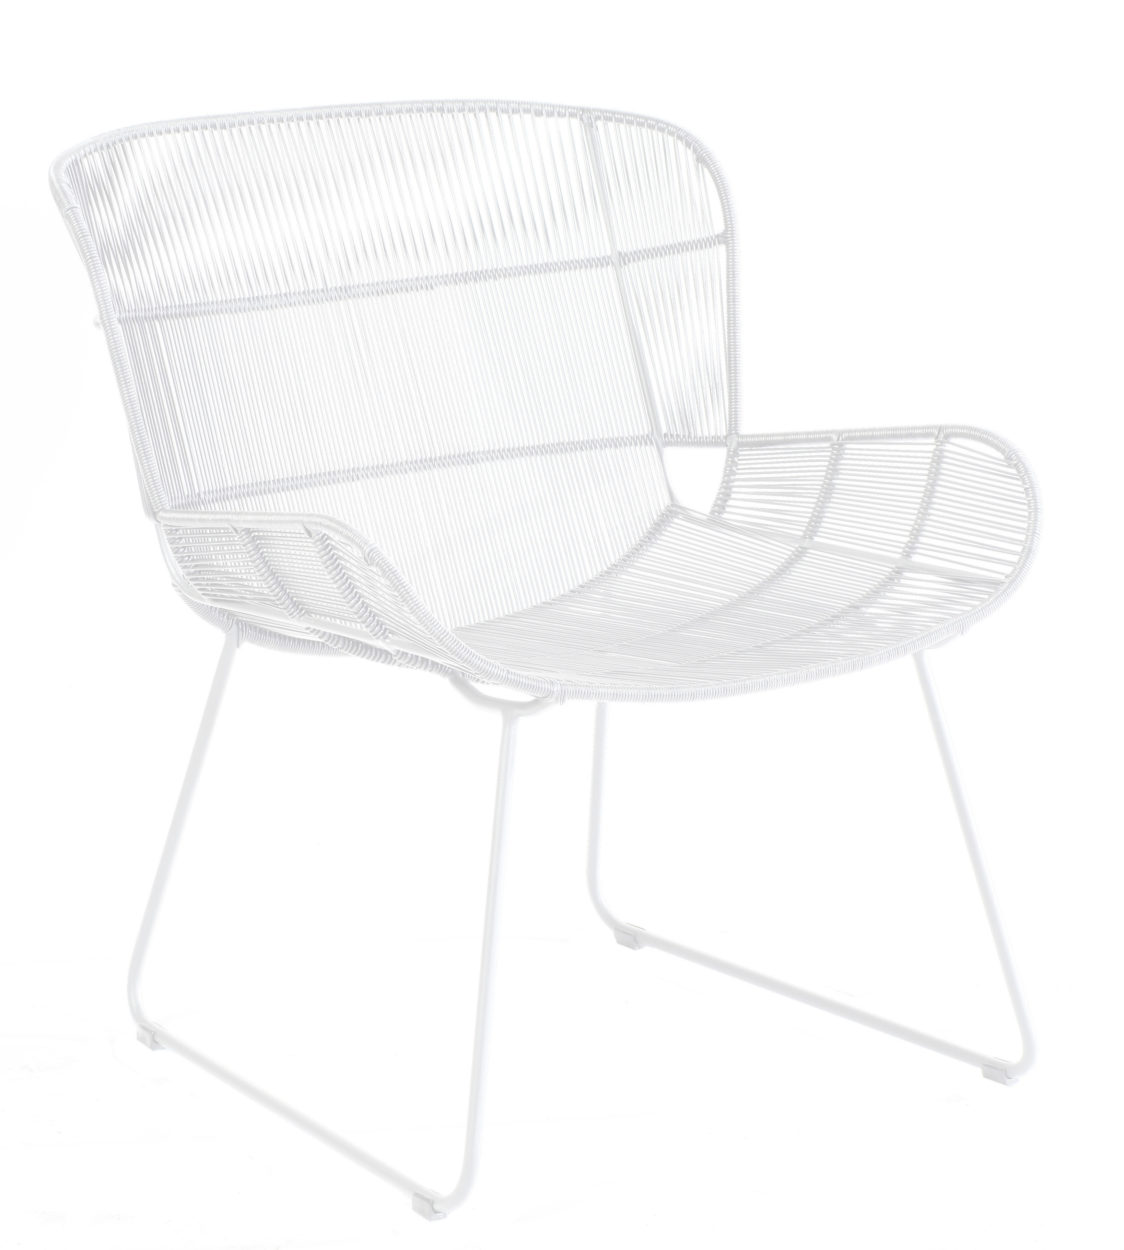 Borek Lounge Chair Faye White By Max en Luuk